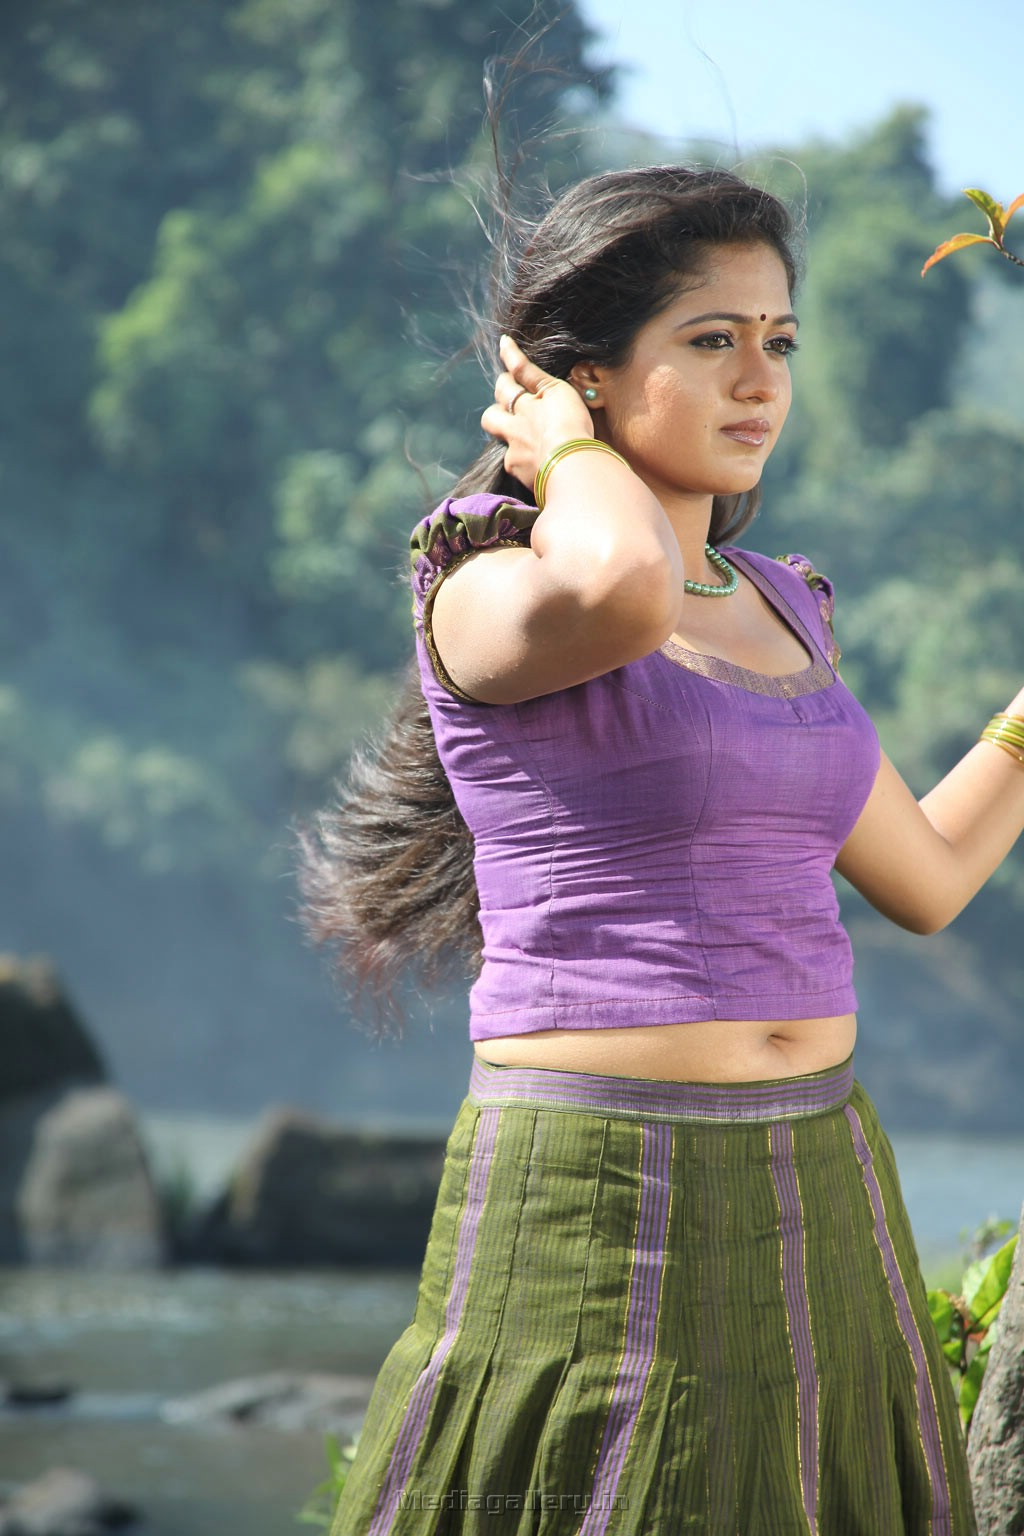 Pin on Actress Cleavage, Navel & Thighs Pics